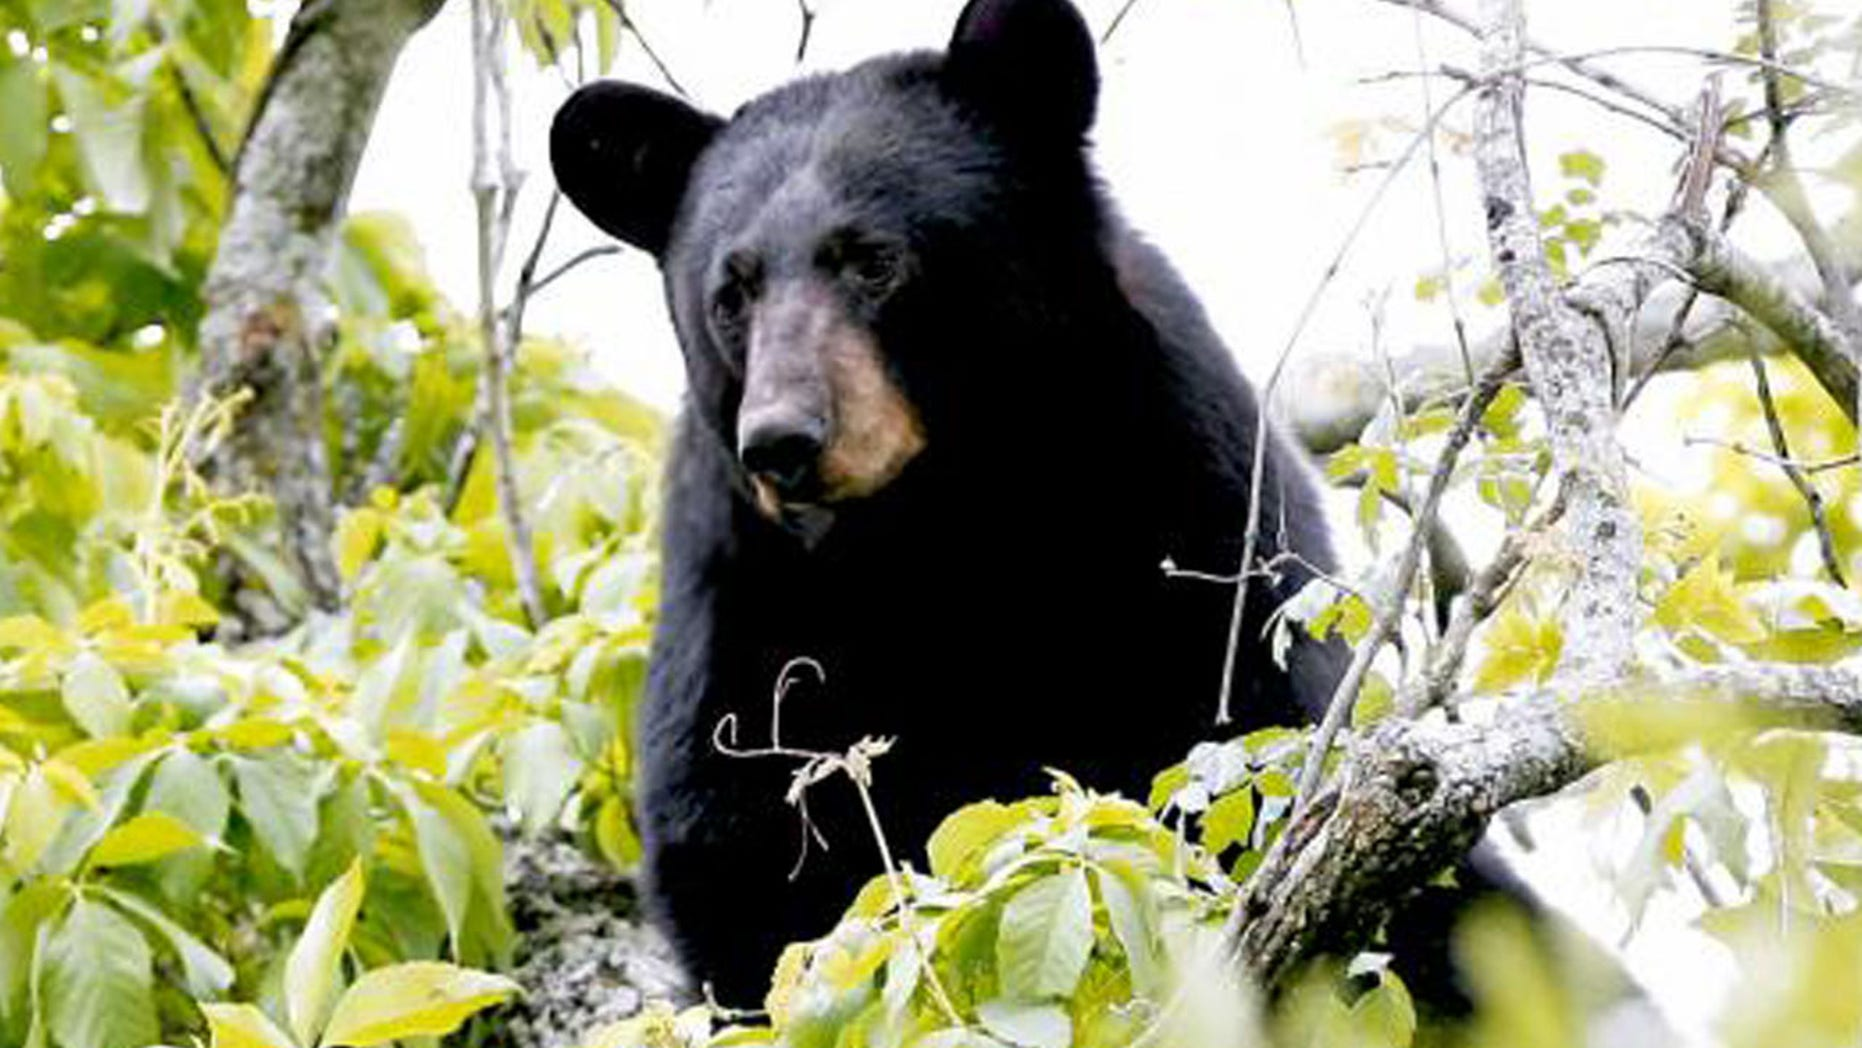 Patrick Cooper encountered the black bear that would take his life in a rare predatory attack.